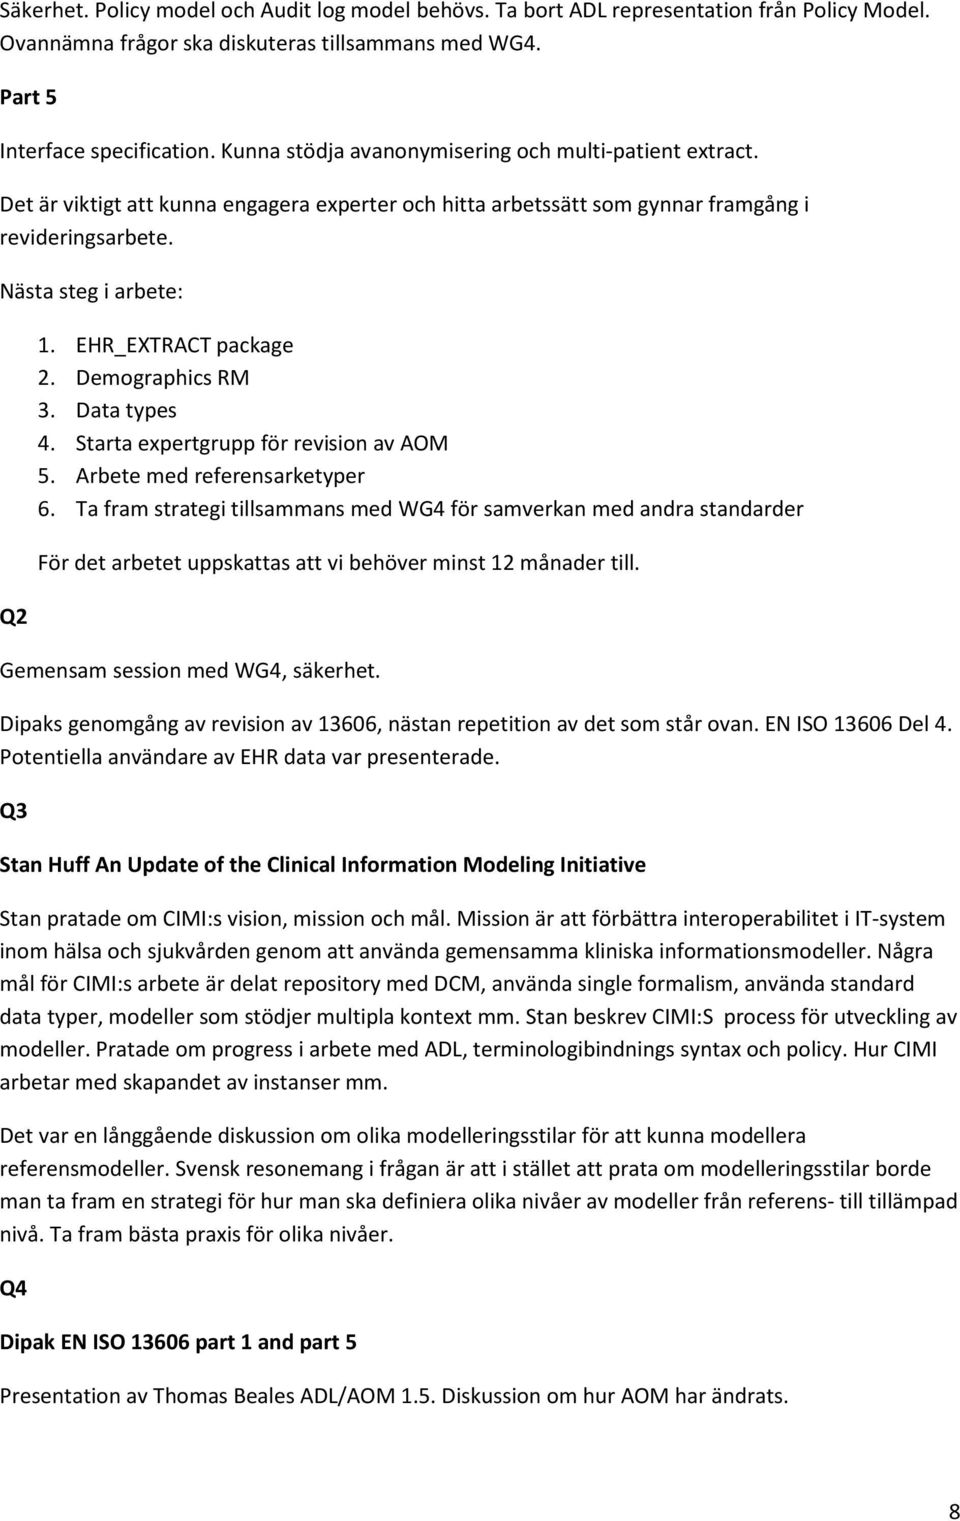 EHR_EXTRACT package 2. Demographics RM 3. Data types 4. Starta expertgrupp för revision av AOM 5. Arbete med referensarketyper 6.